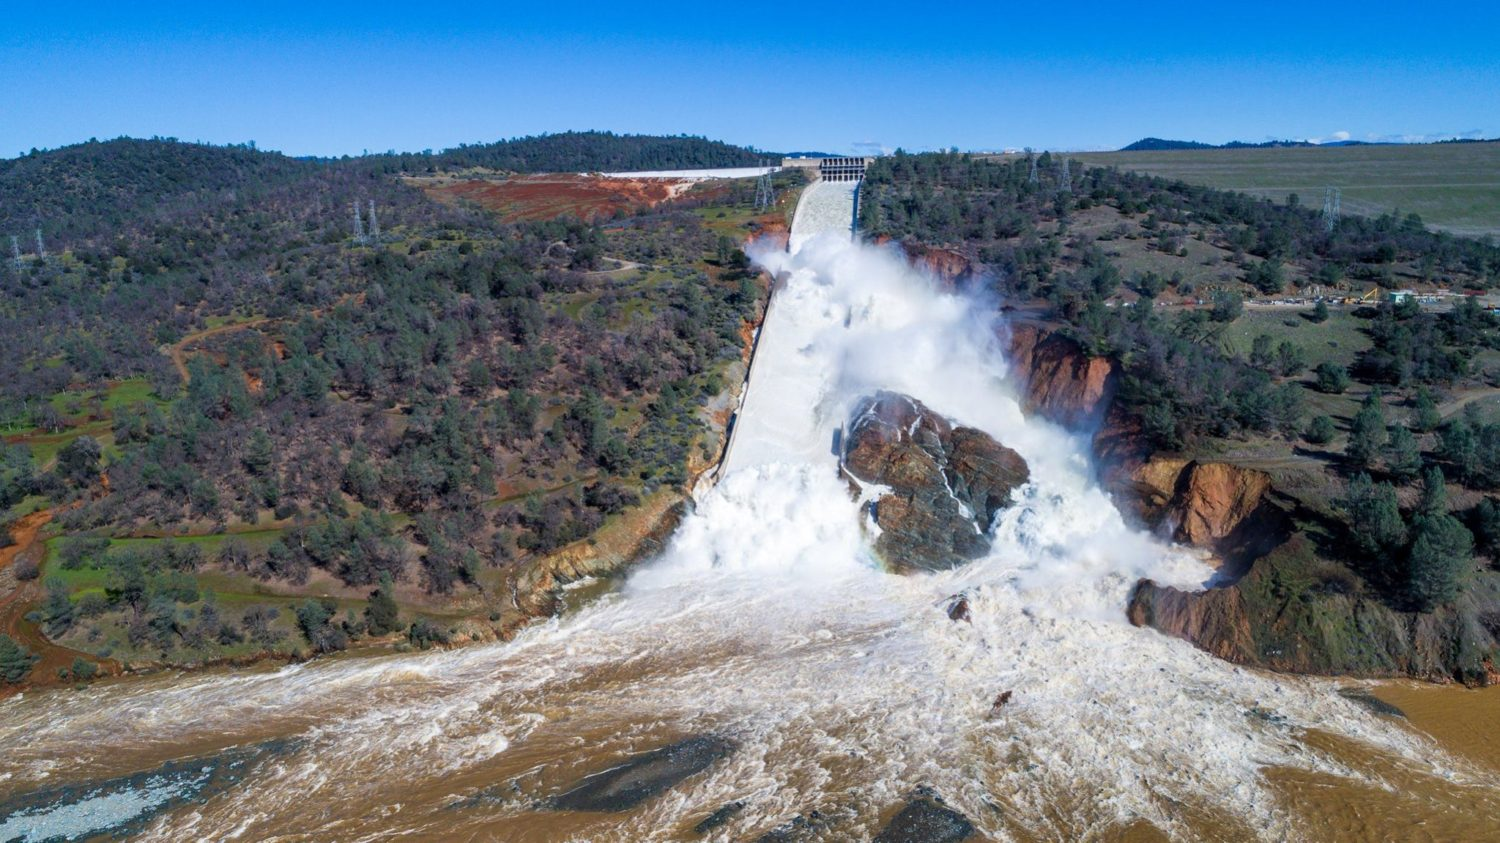 Emergency Evacuation Issued for Oroville Dam, CA Area Due to